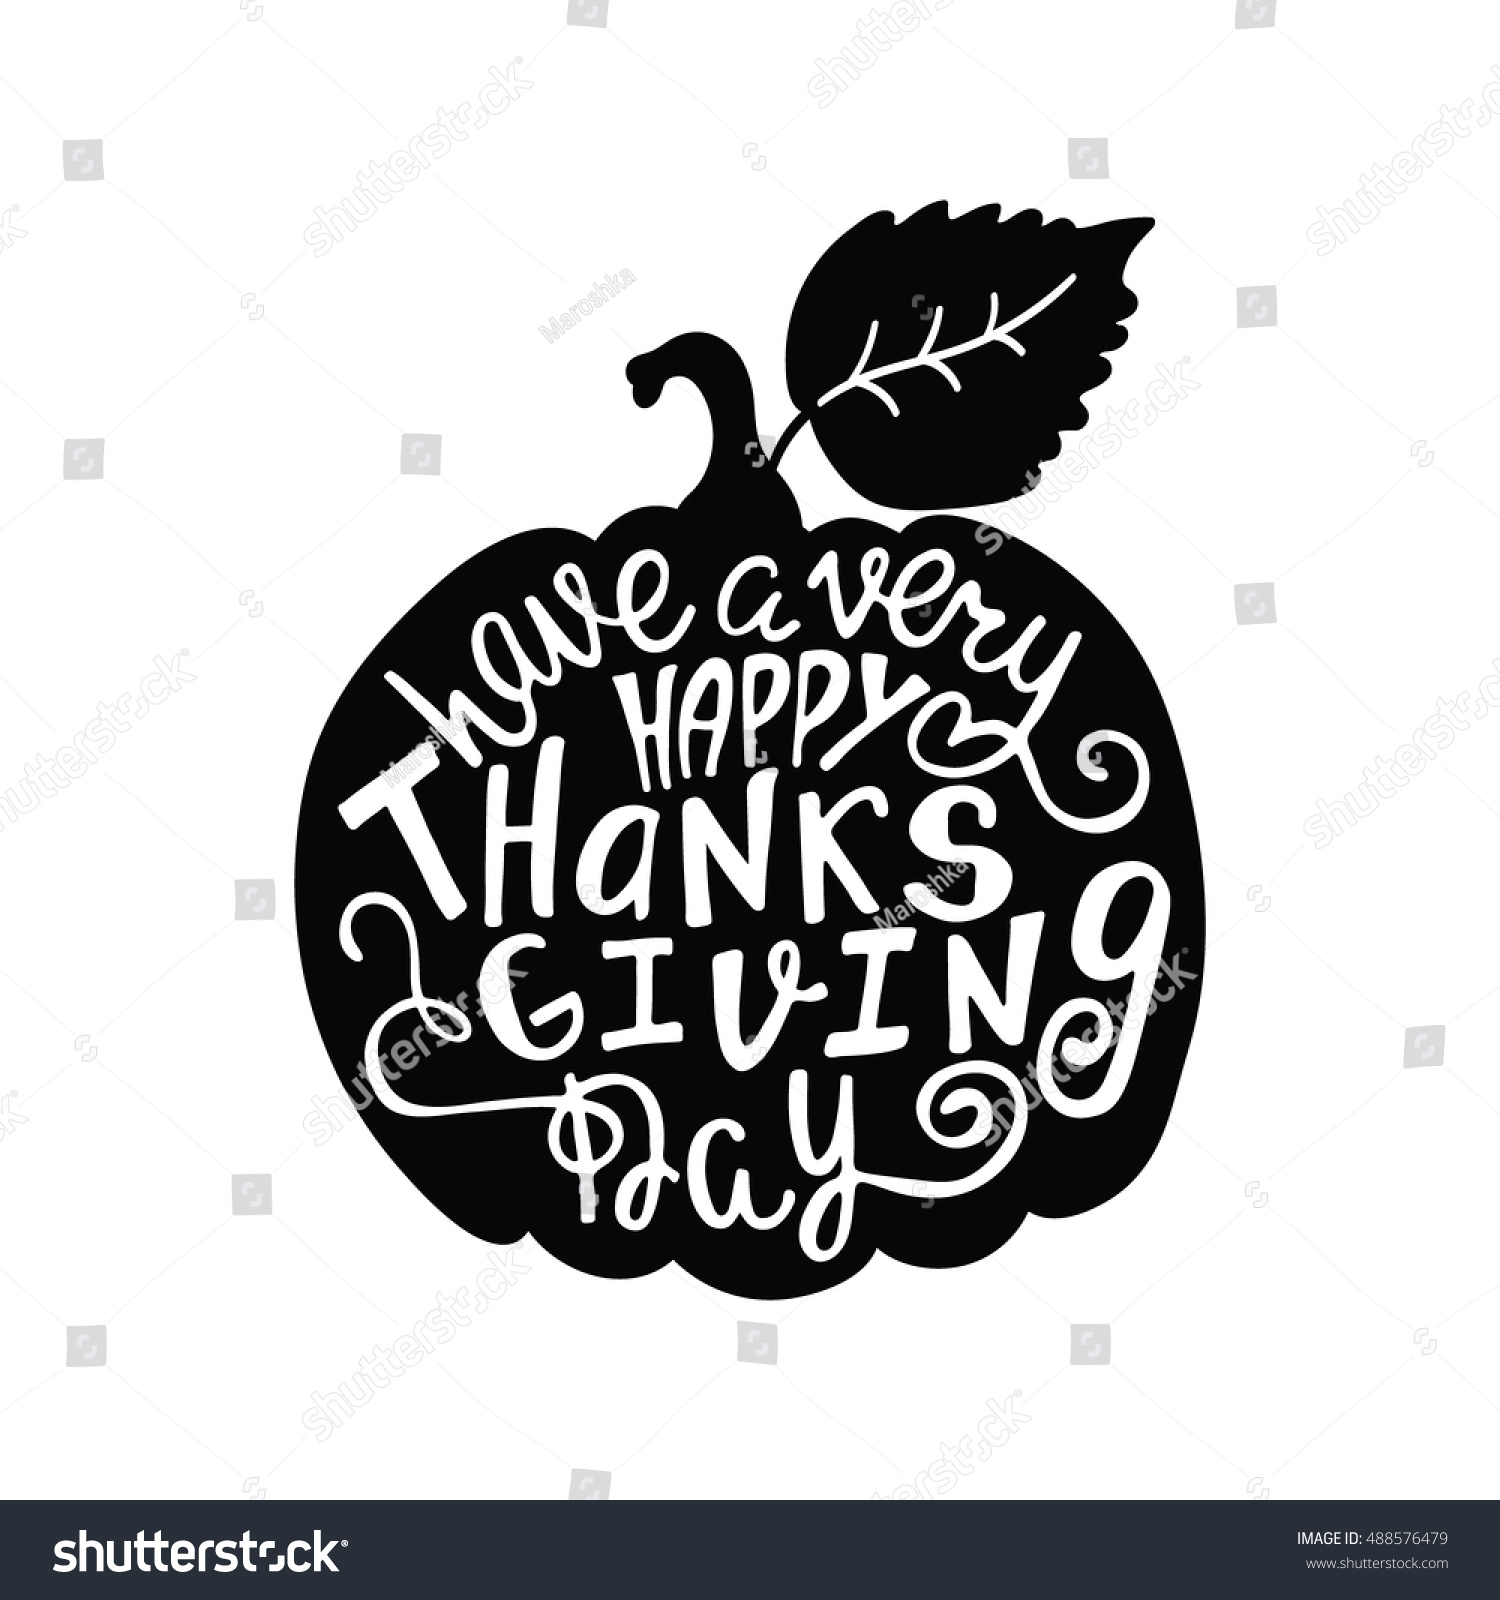 Have A Very Happy Thanksgiving Day Handwritten Inscription Modern Calligraphy Phrase With Hand Drawn